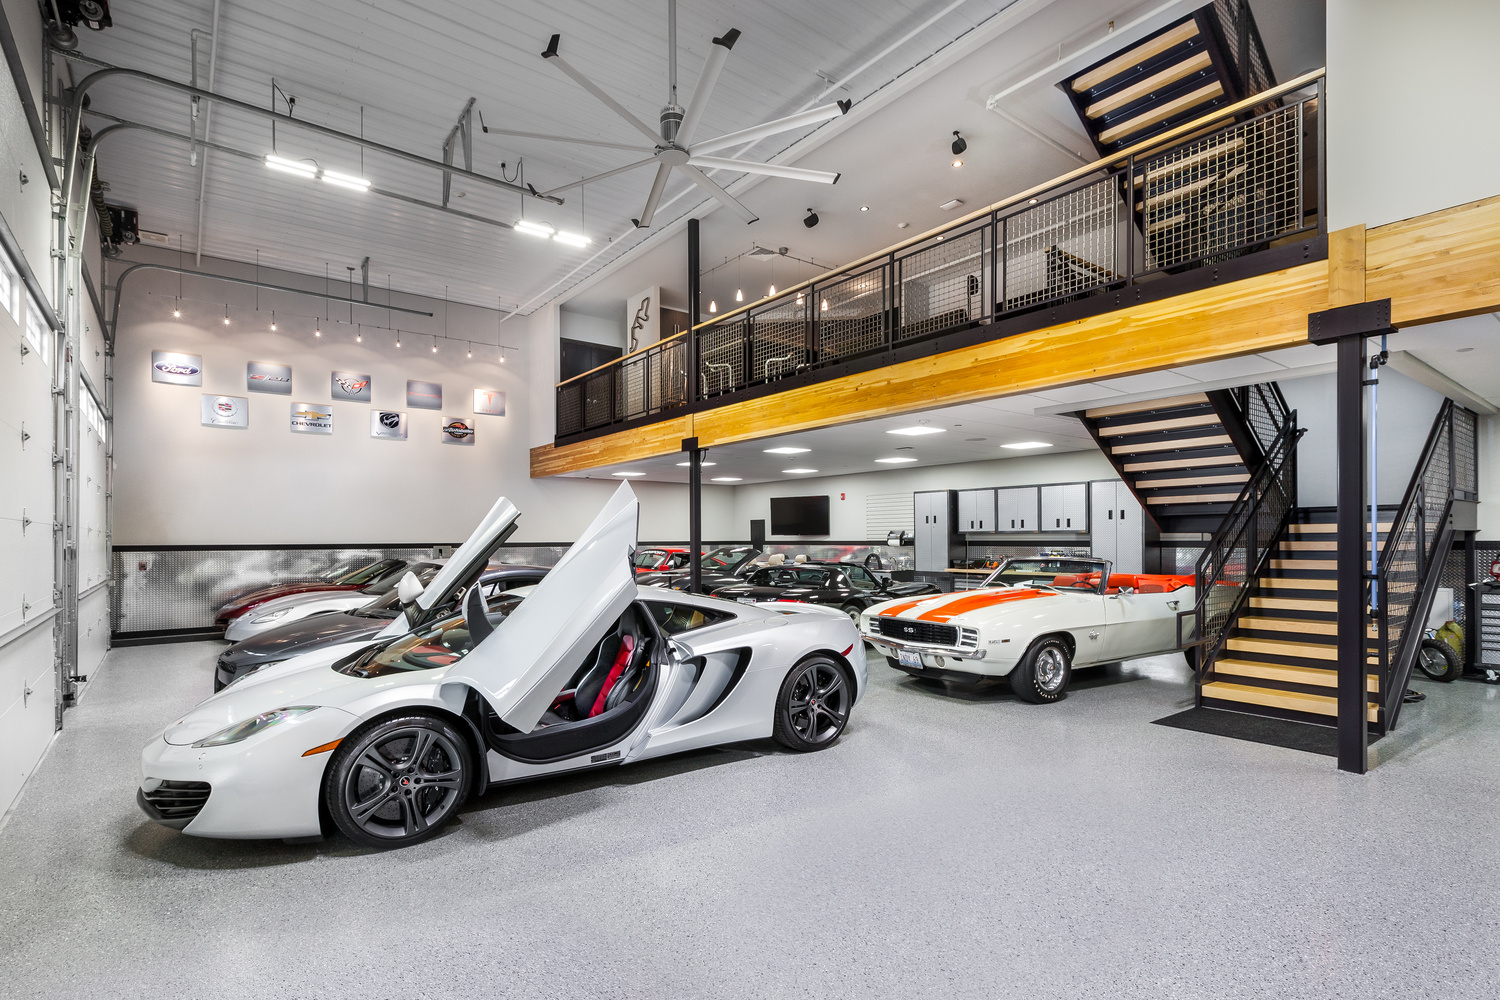 When your cars need their own condo by Michael Donovan